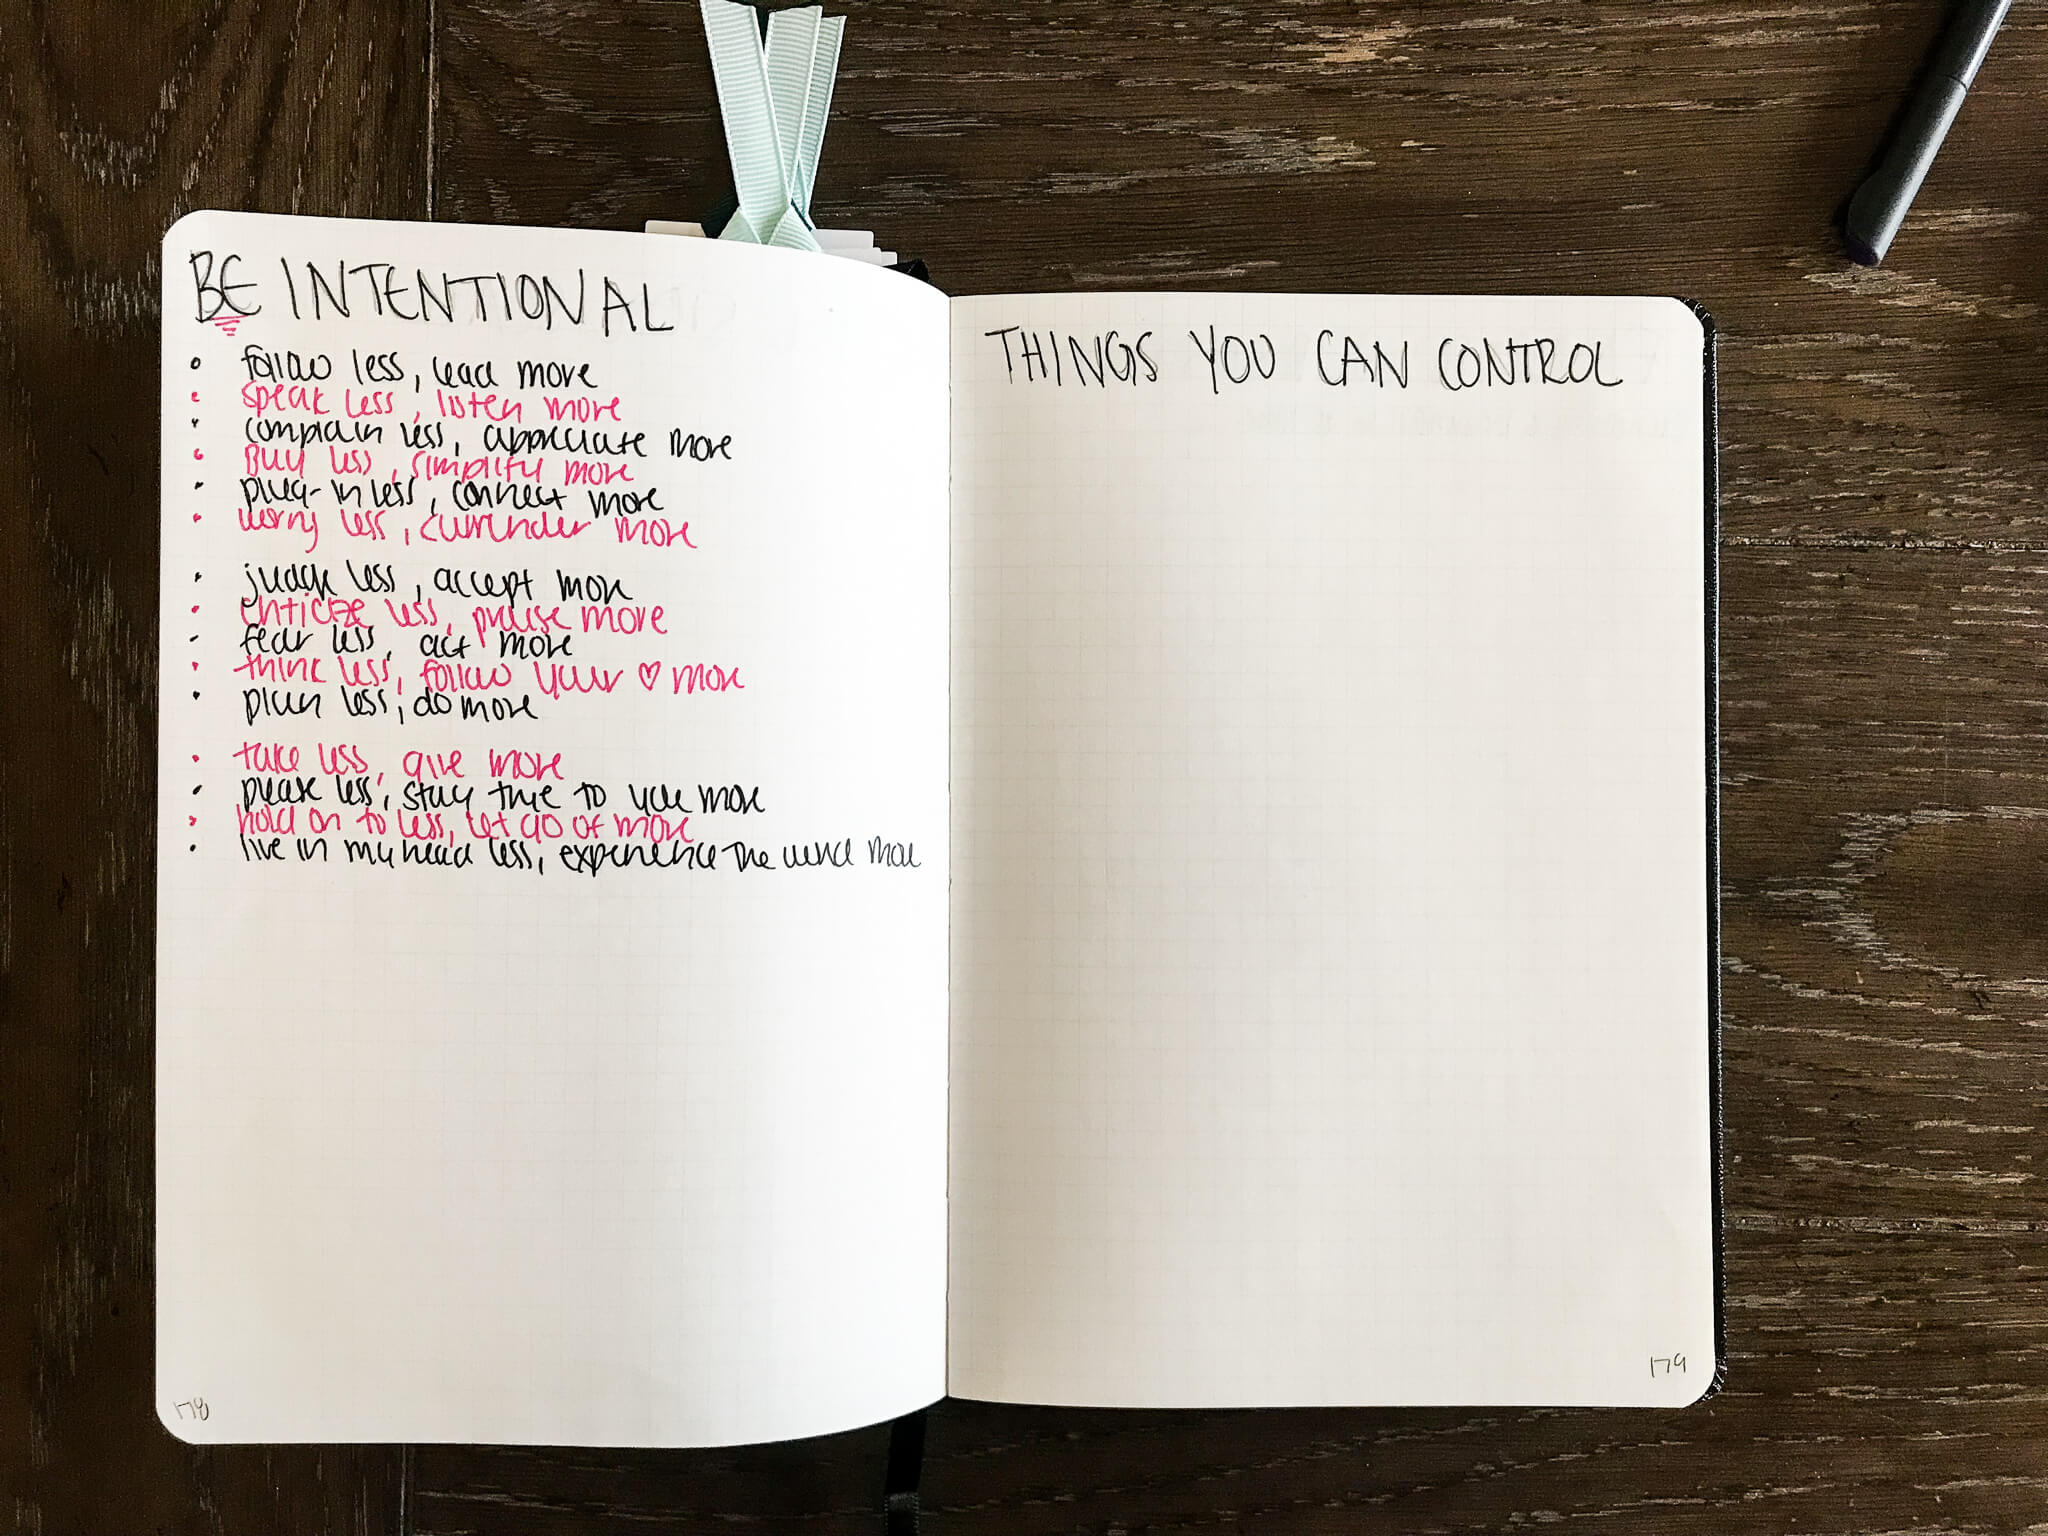 2019 Bullet Journal www.sarahkayhoffman.com #bulletjournal #bujo #healthyliving #mompreneur lists be intentional